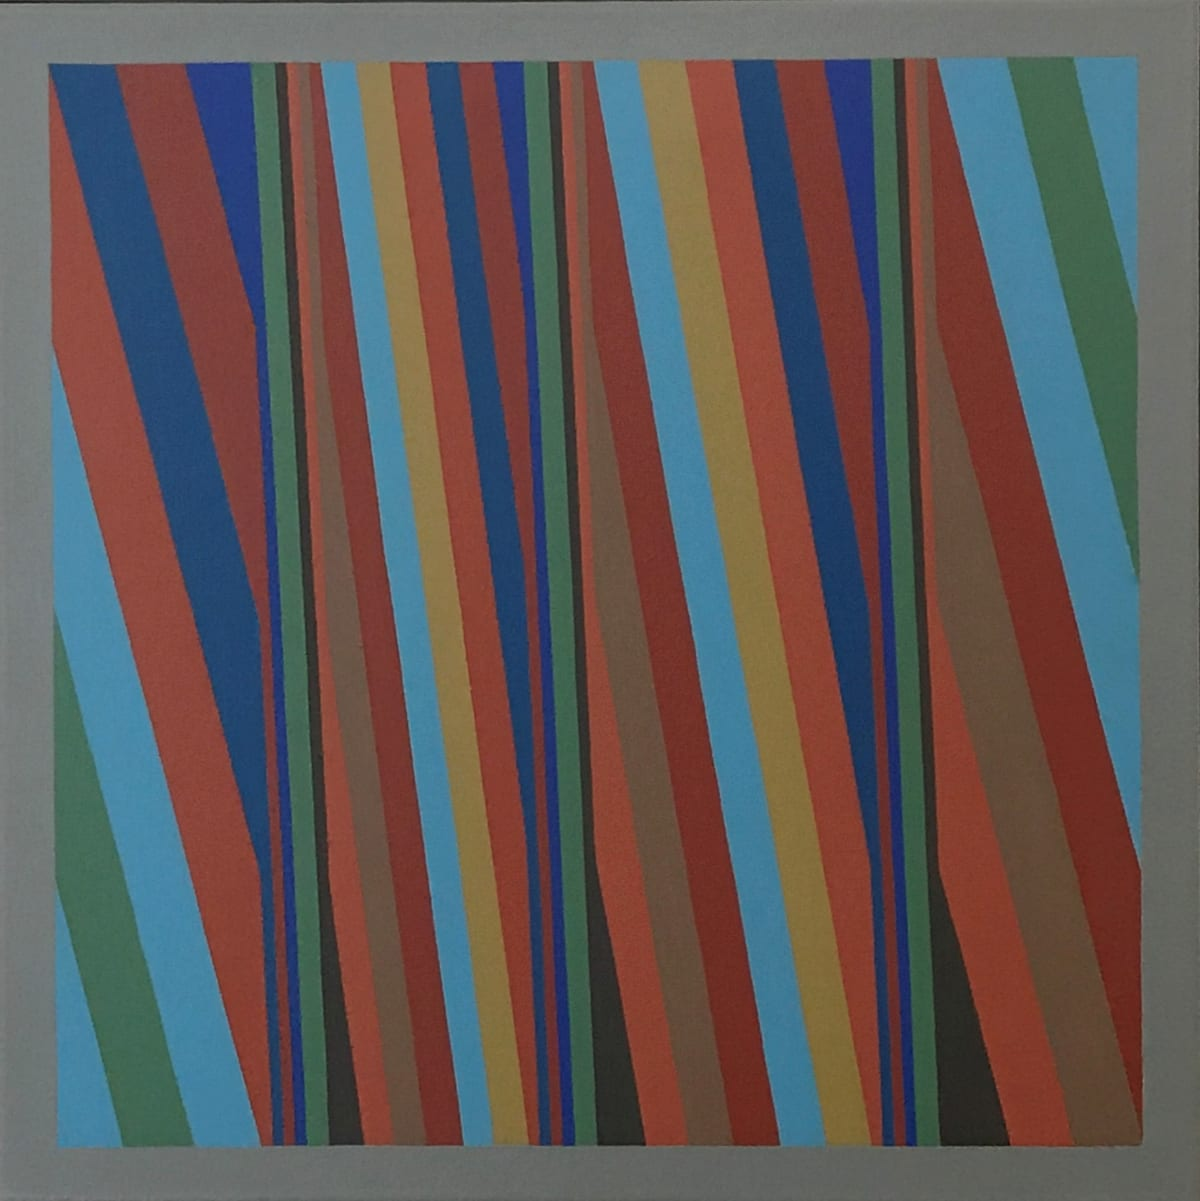 ROY OSBORNE Bends 71, 2010 oil on canvas 51 x 51 cm 20 1/8 x 20 1/8 in signed and dated